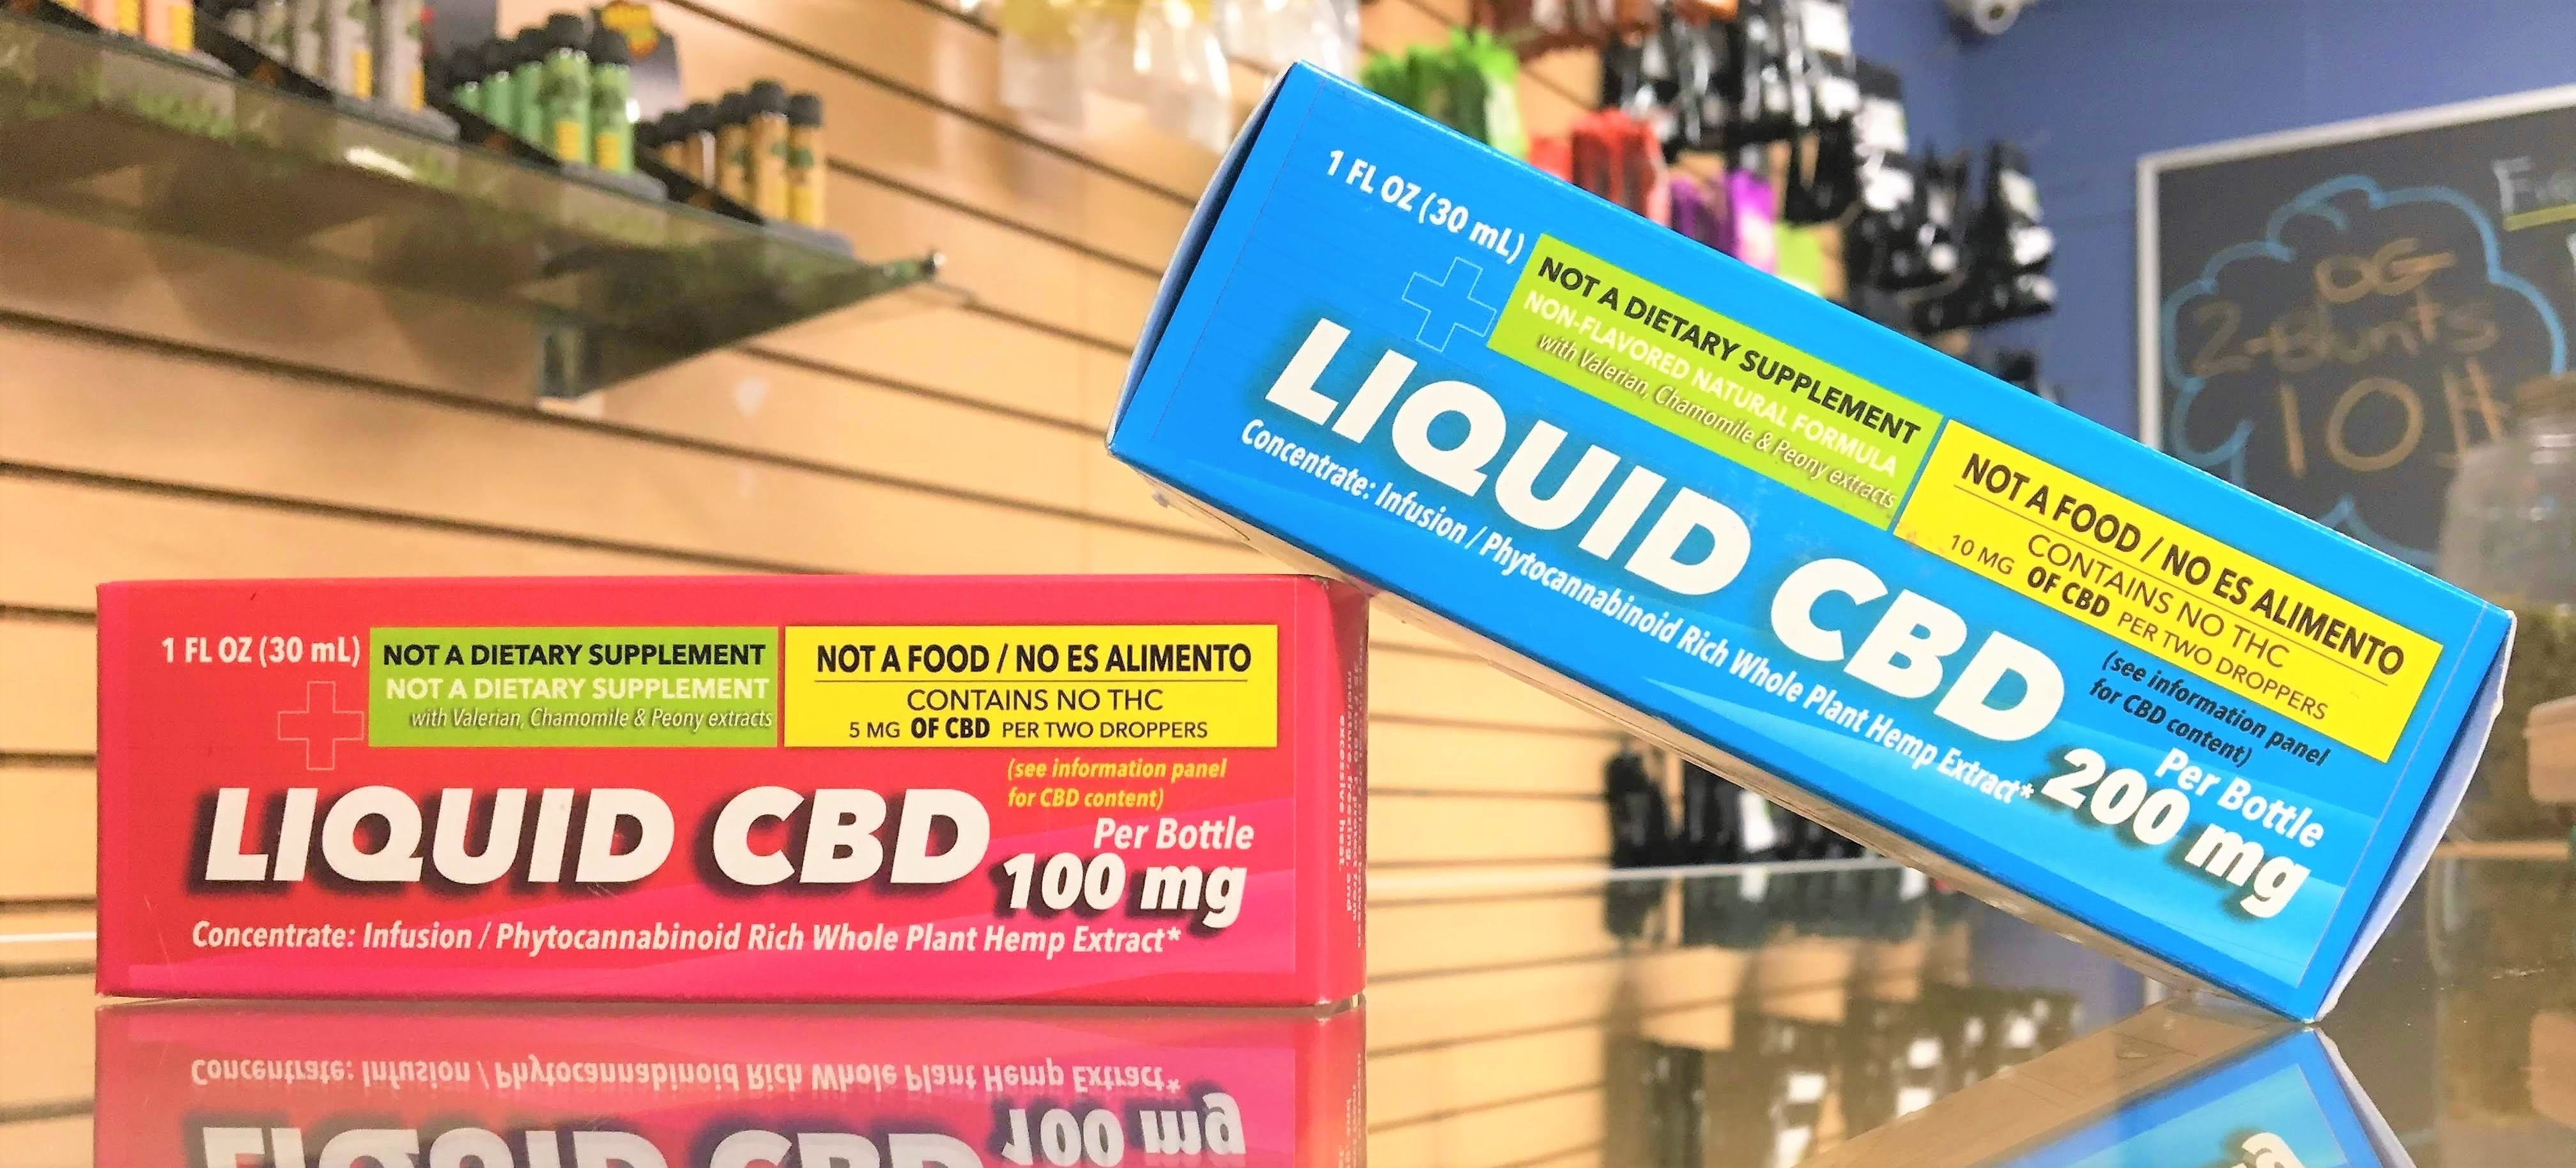 Liquid CBD 200mg